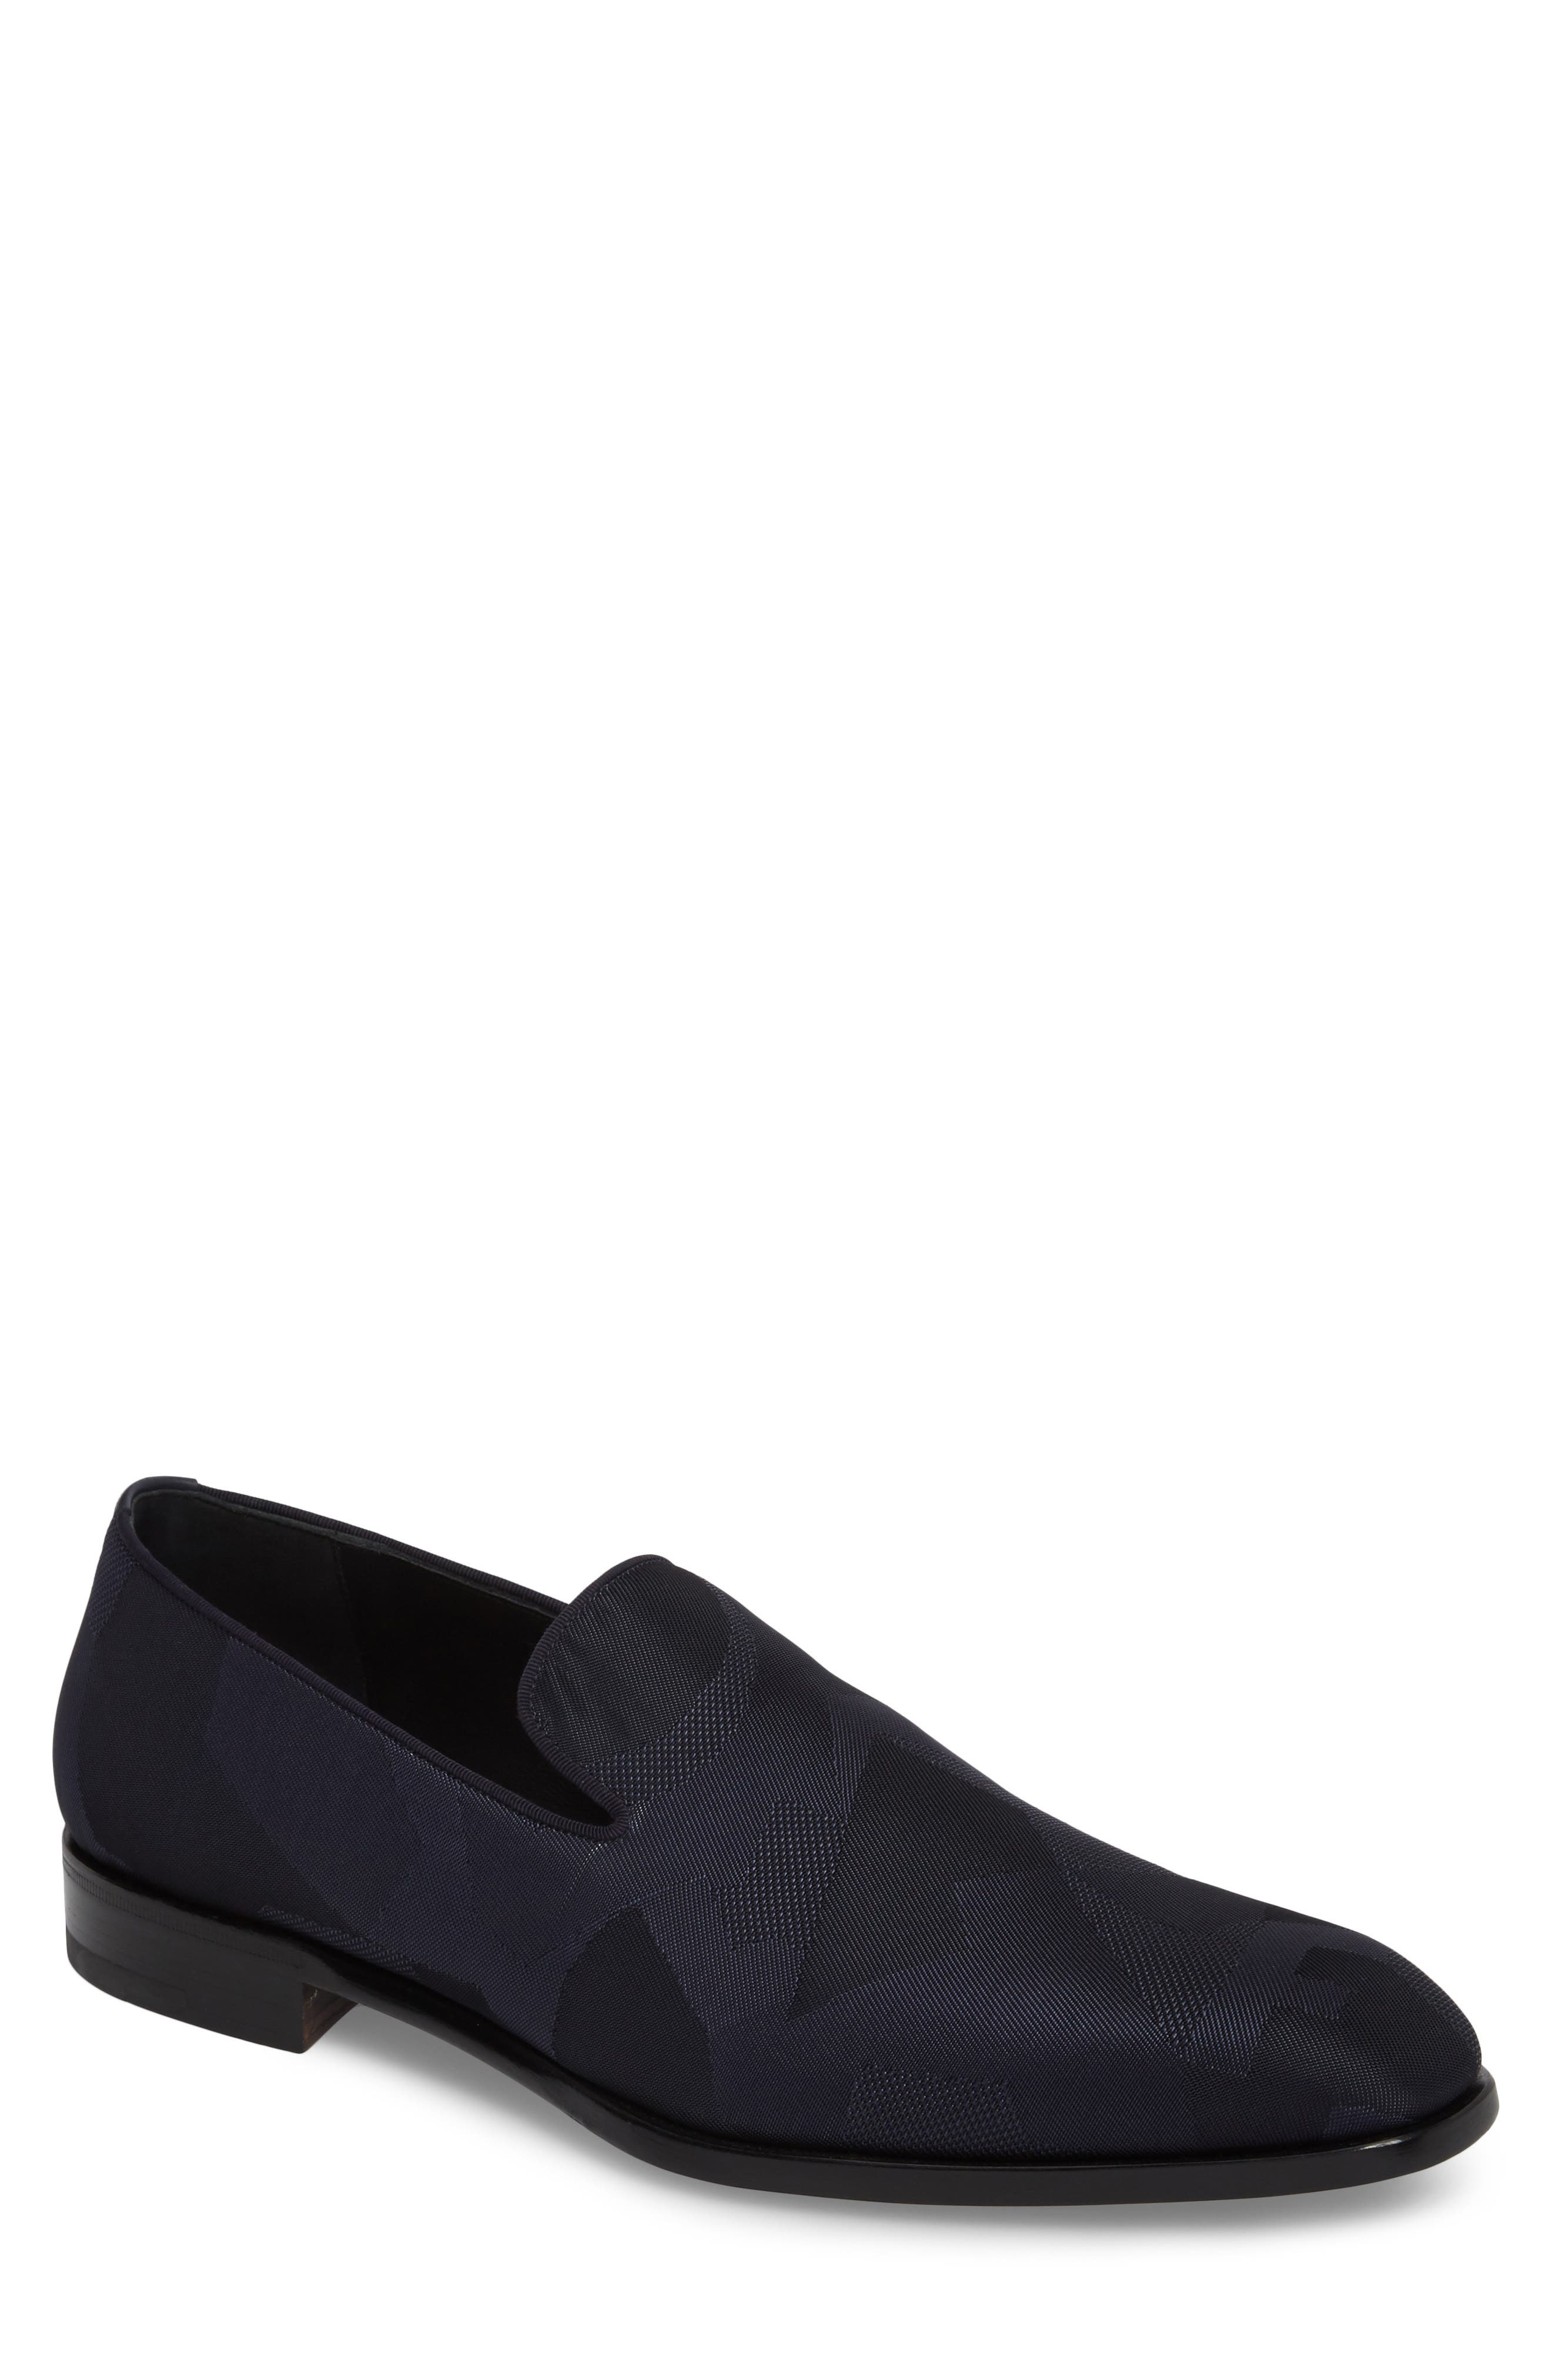 Class Venetian Loafer,                         Main,                         color, 492